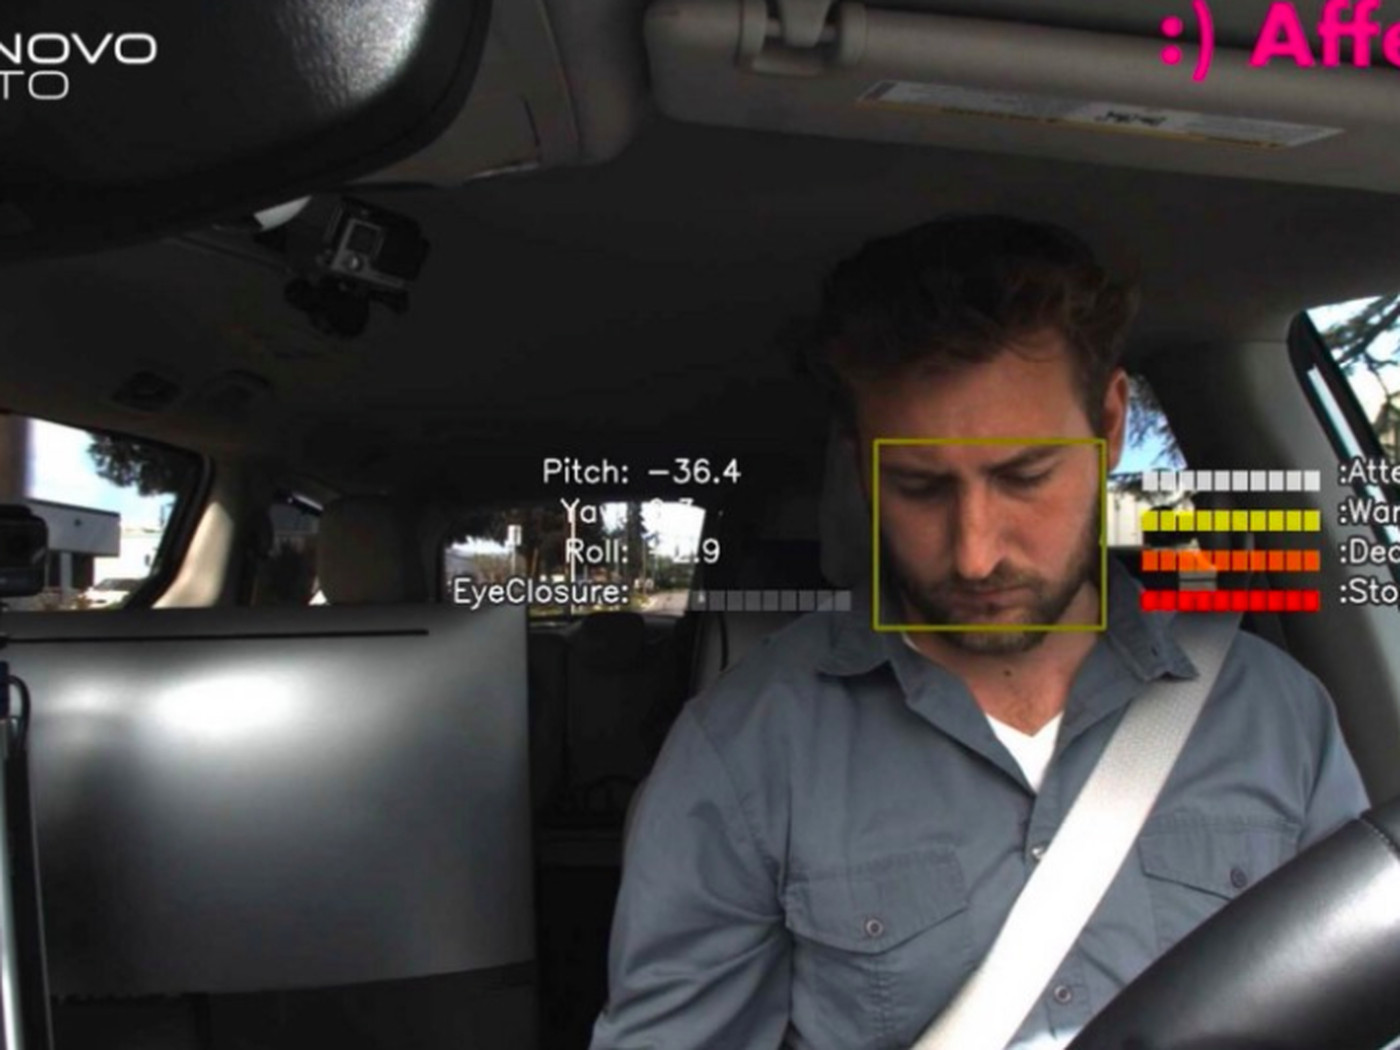 We need self-driving cars that can monitor our attention along with